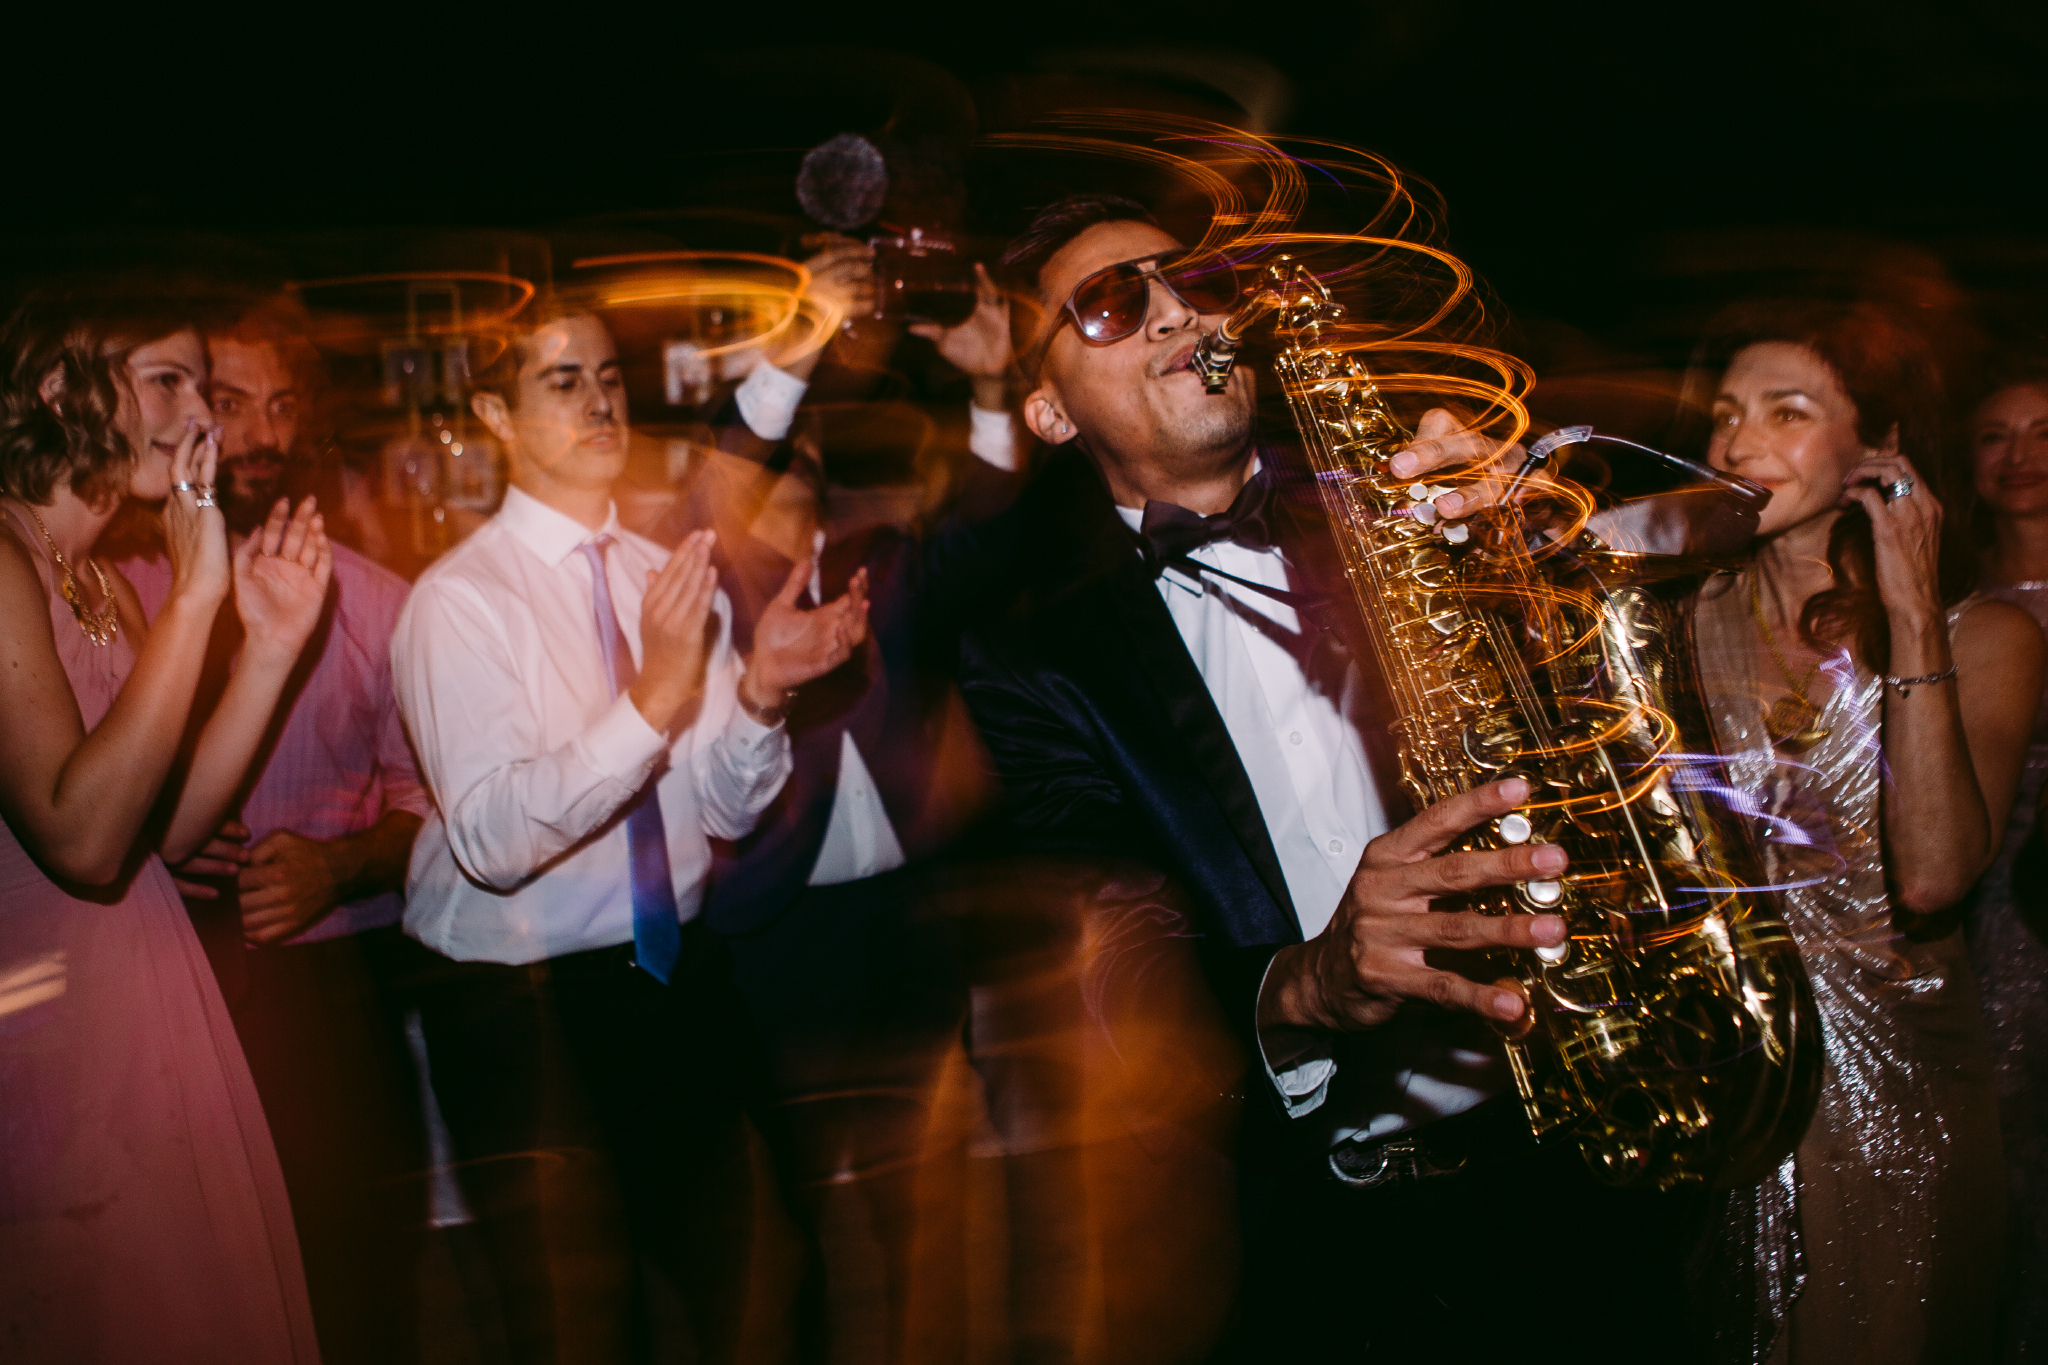 san diego wedding   photographer | long exposure shot of man with saxophone playing in the middle   of a crowd